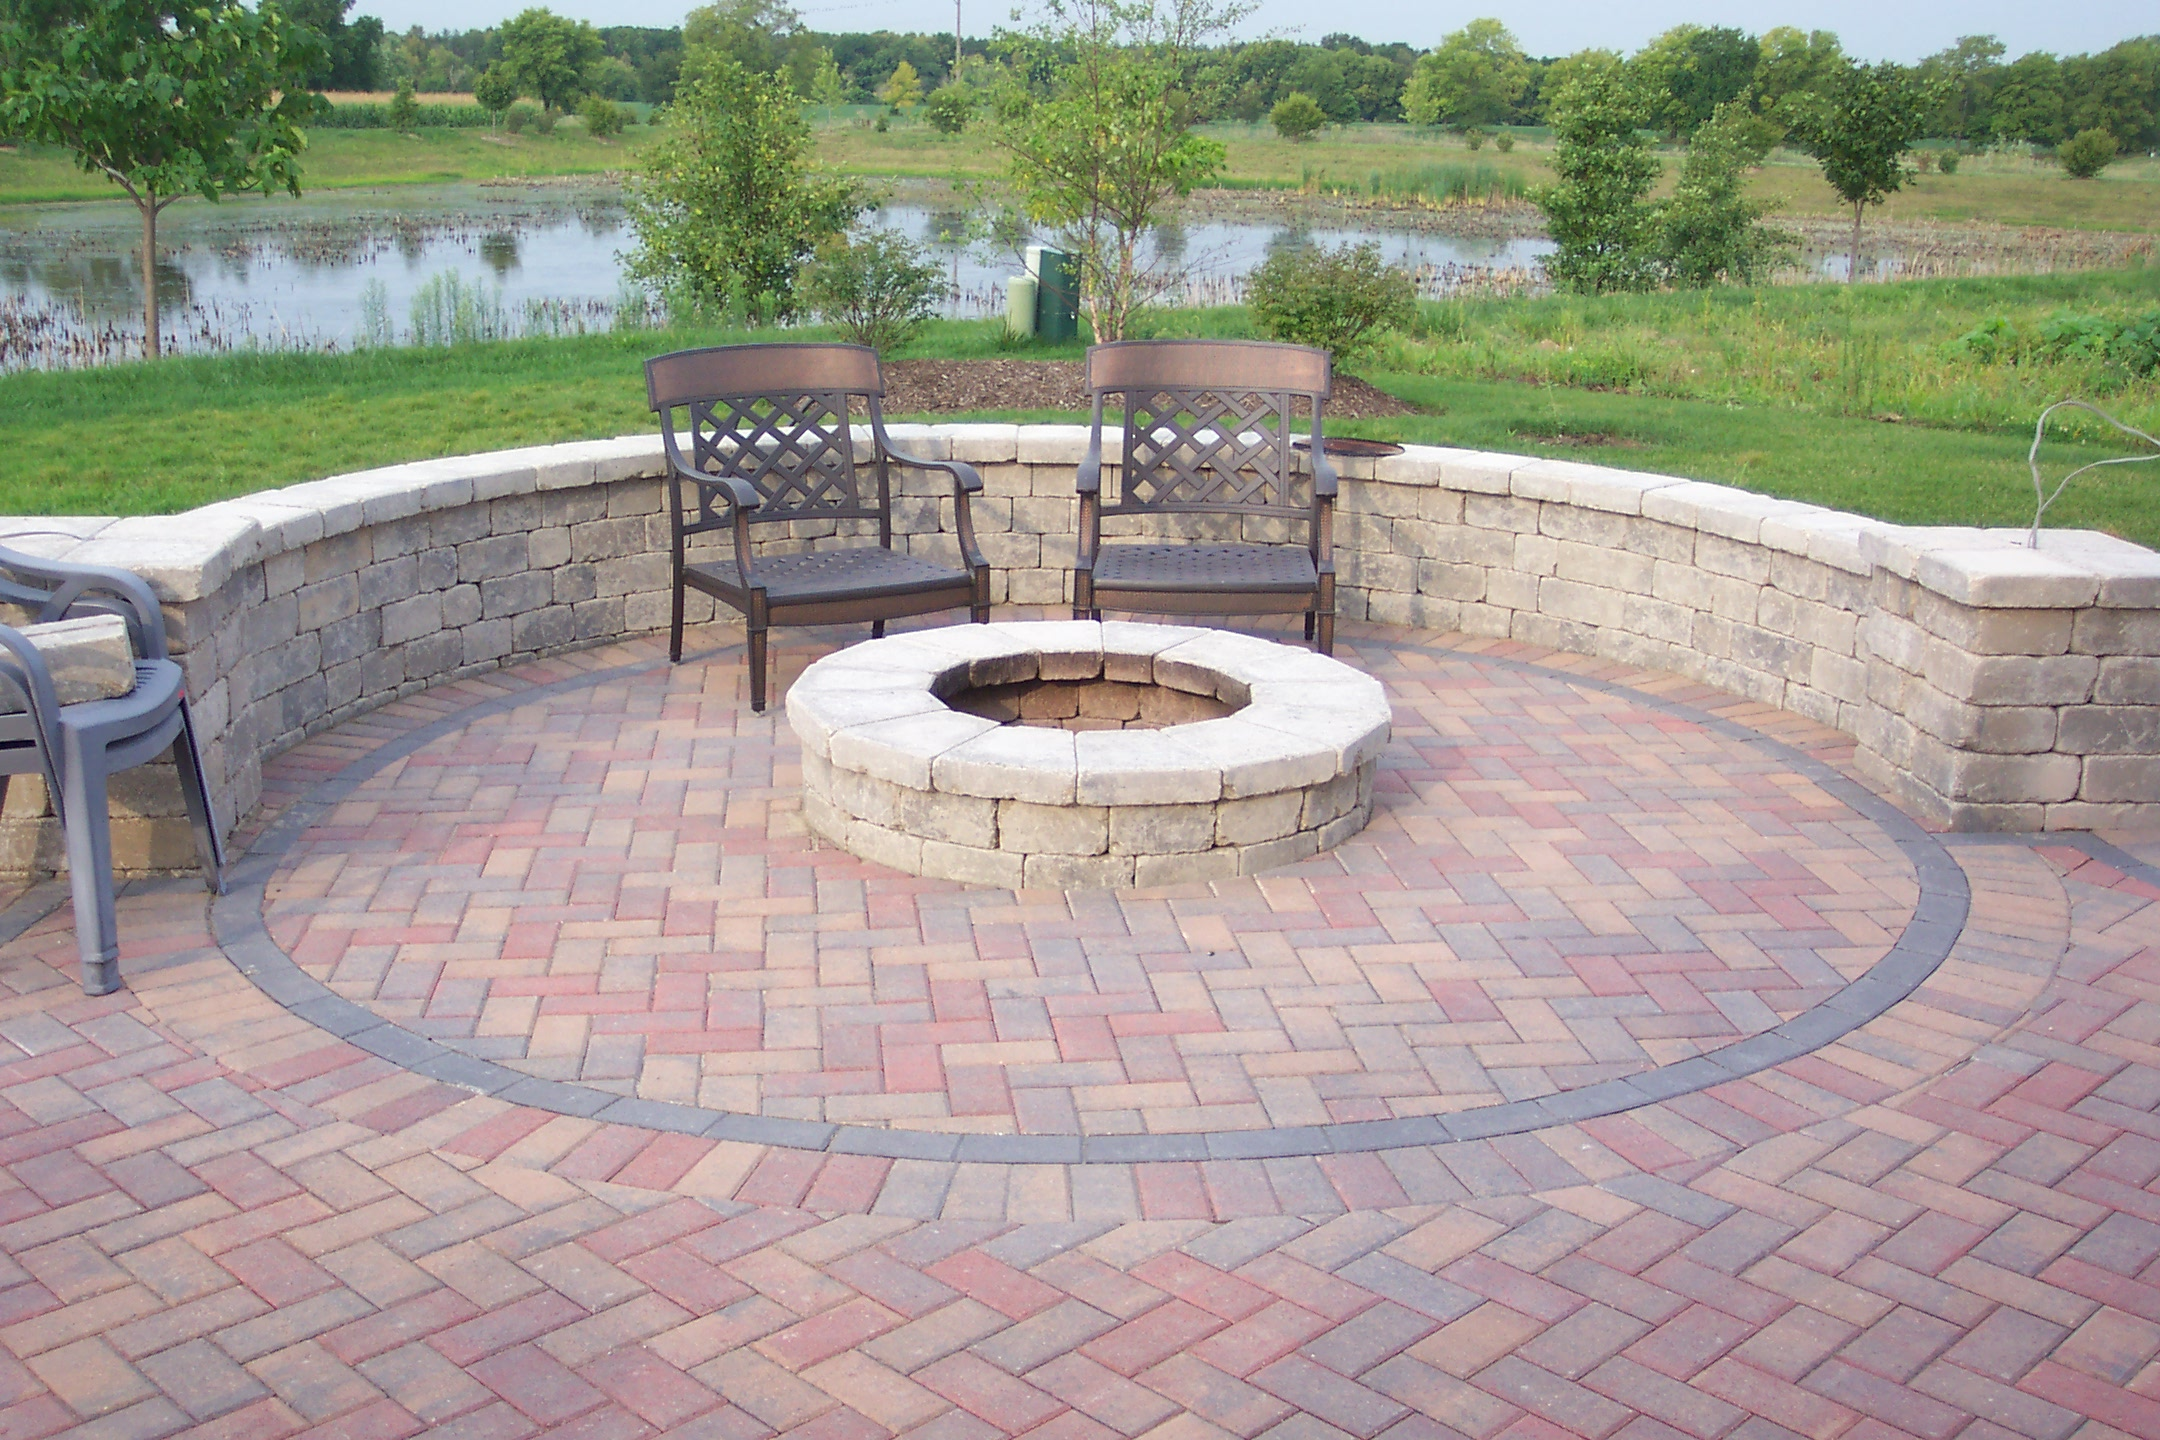 brick patio fire pit ideas - Patio Design Ideas With Fire Pits